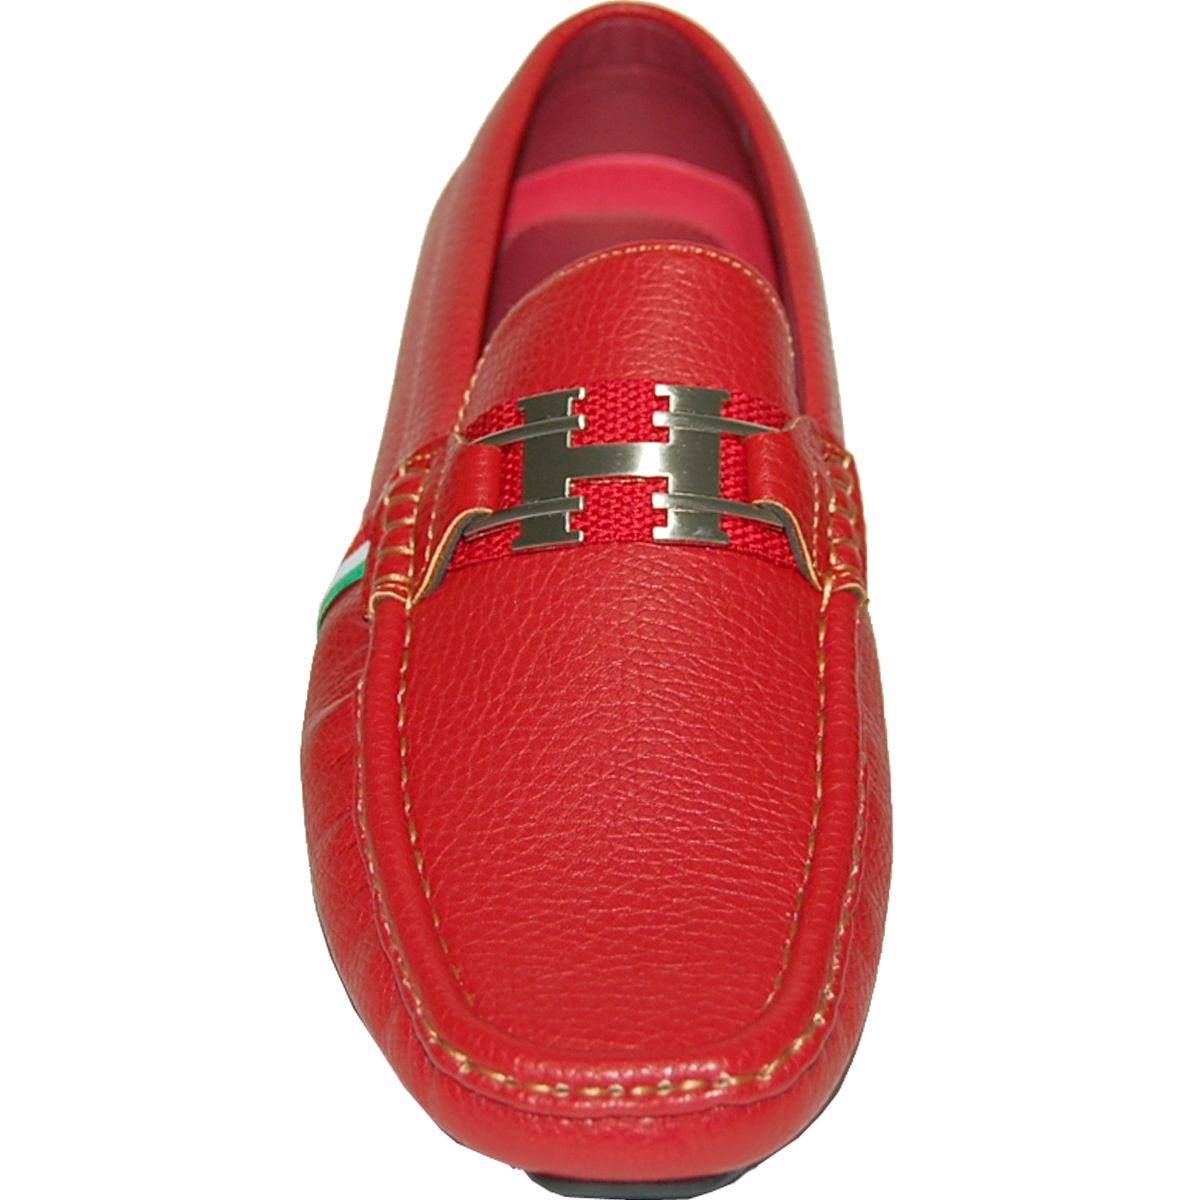 KRAZY SHOE ARTISTS Red Stallion with Green-Red Colors Stripe Ornament Mens Slip On